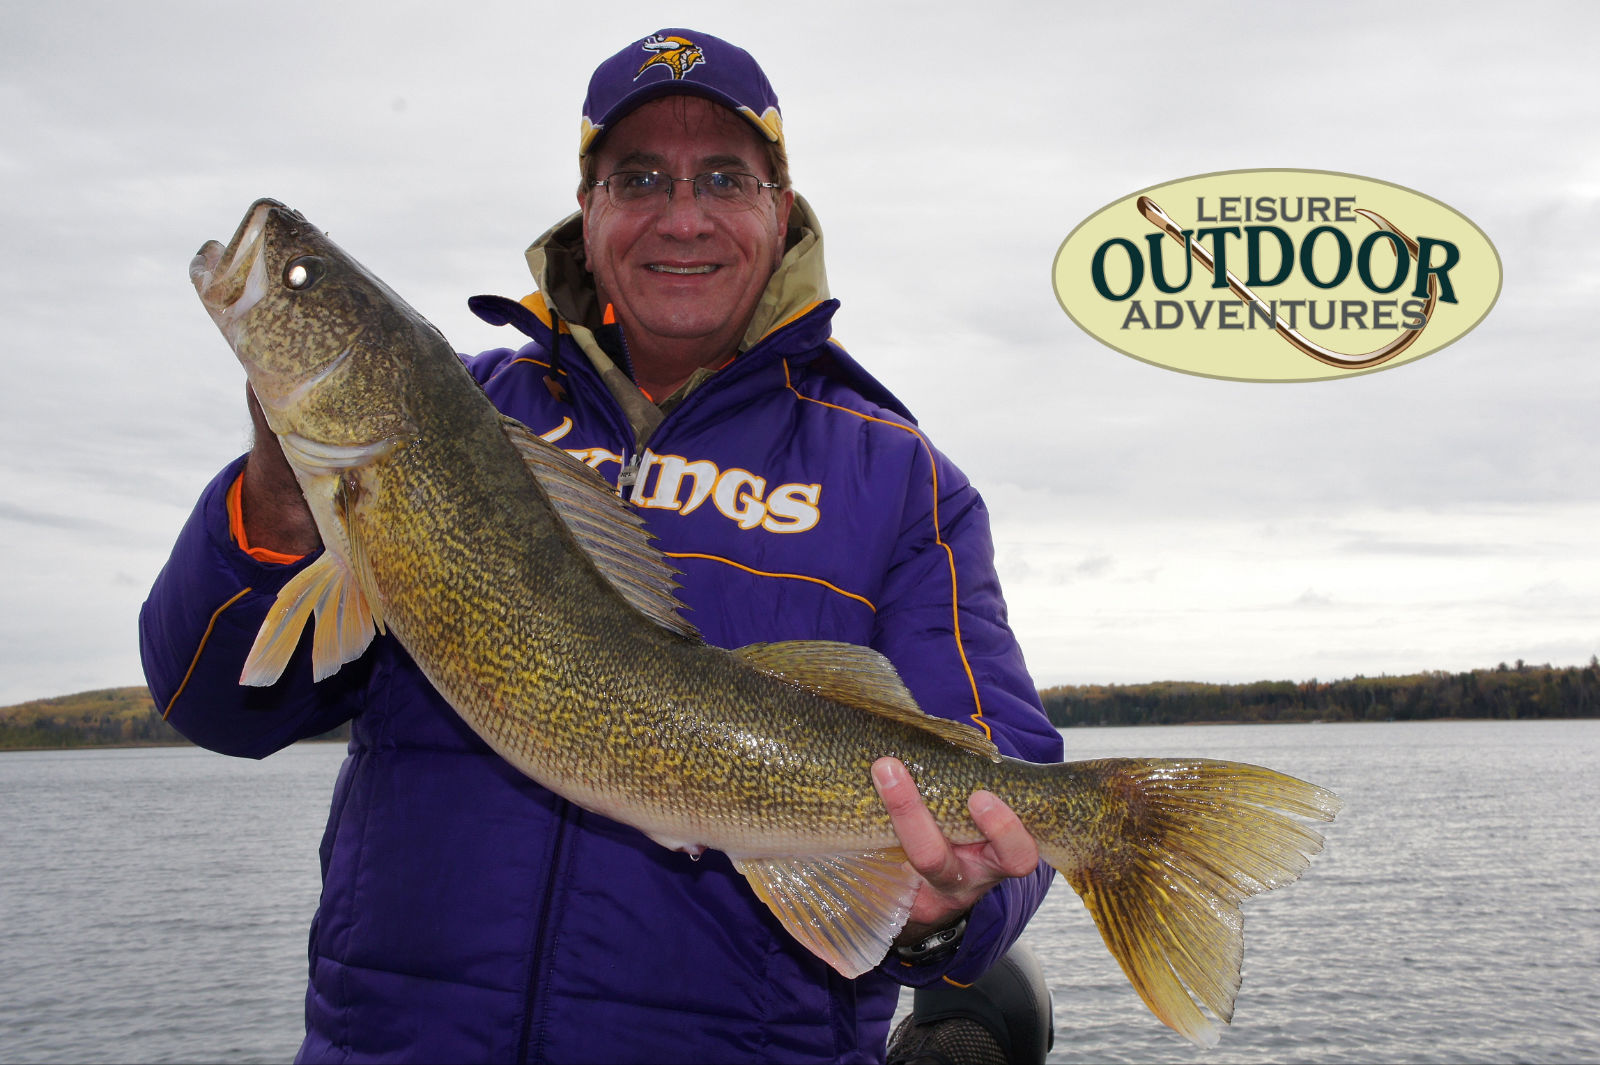 Leisure outdoor adventures 10 9 2011 leech lake fishing for Leech lake fishing report